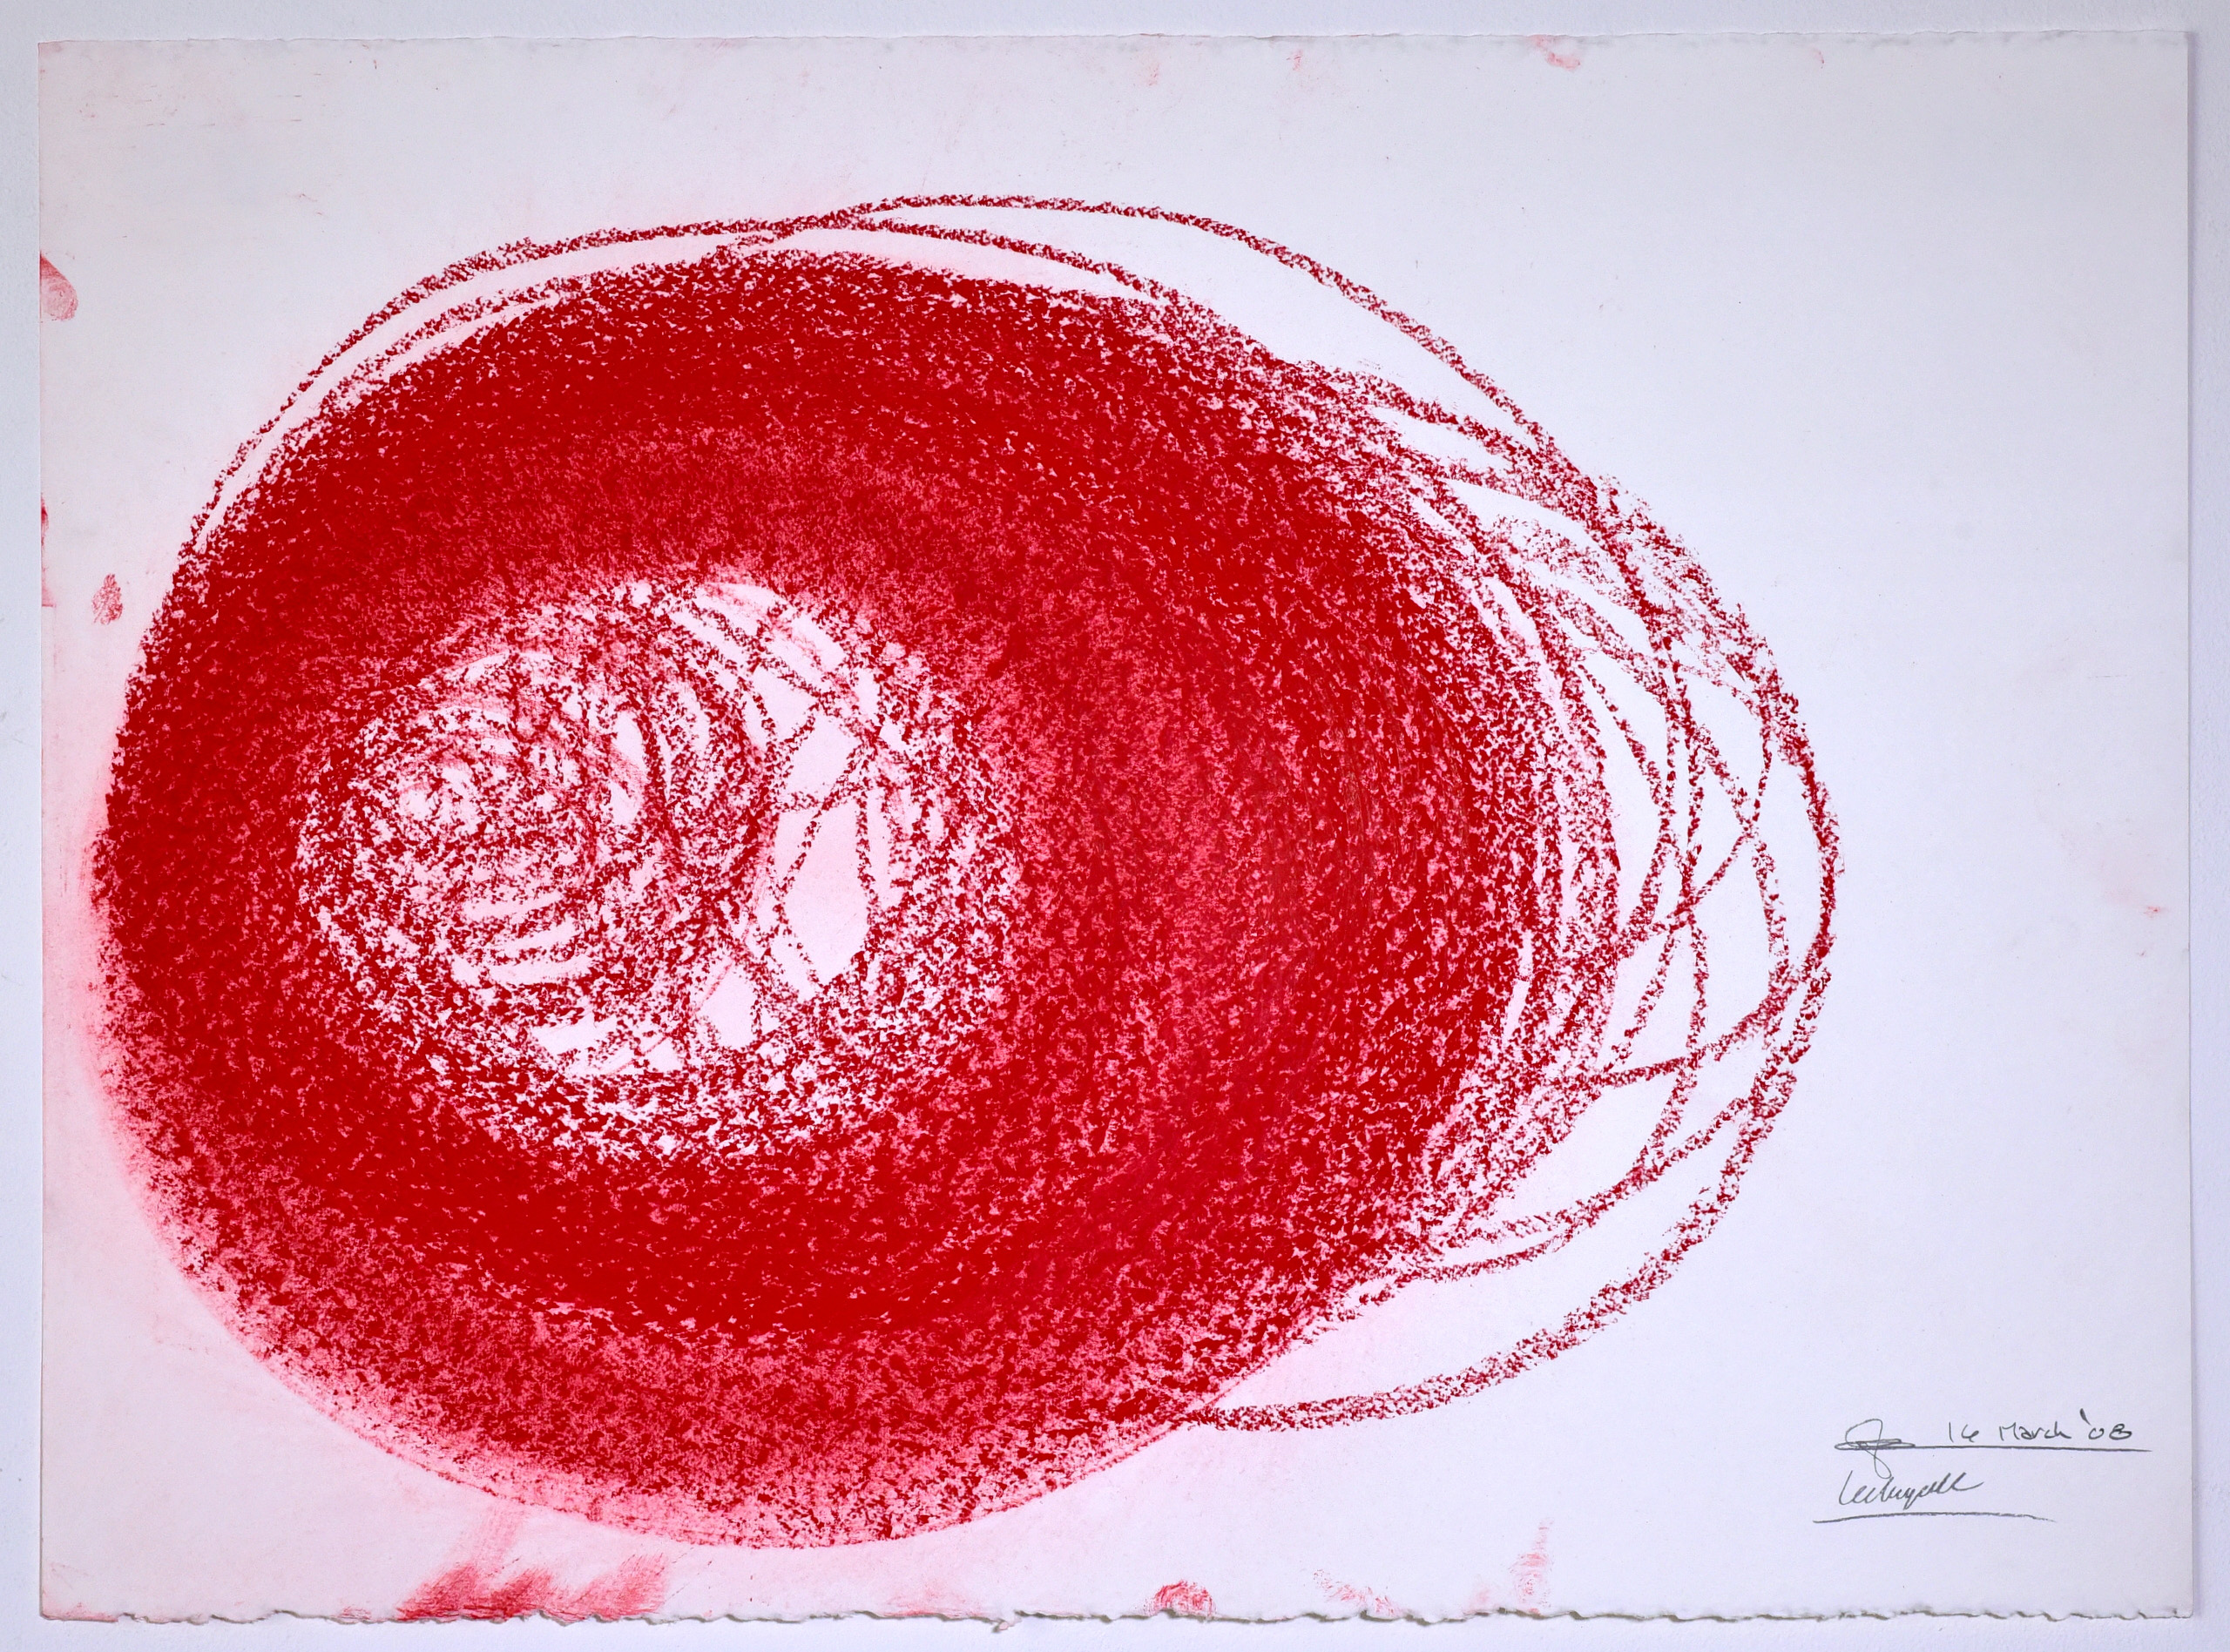 """Automatic Drawing #2, 16 March 2008, conte crayon on paper, 22x30"""", Lee Tuyet Le & Glenn Zucman"""